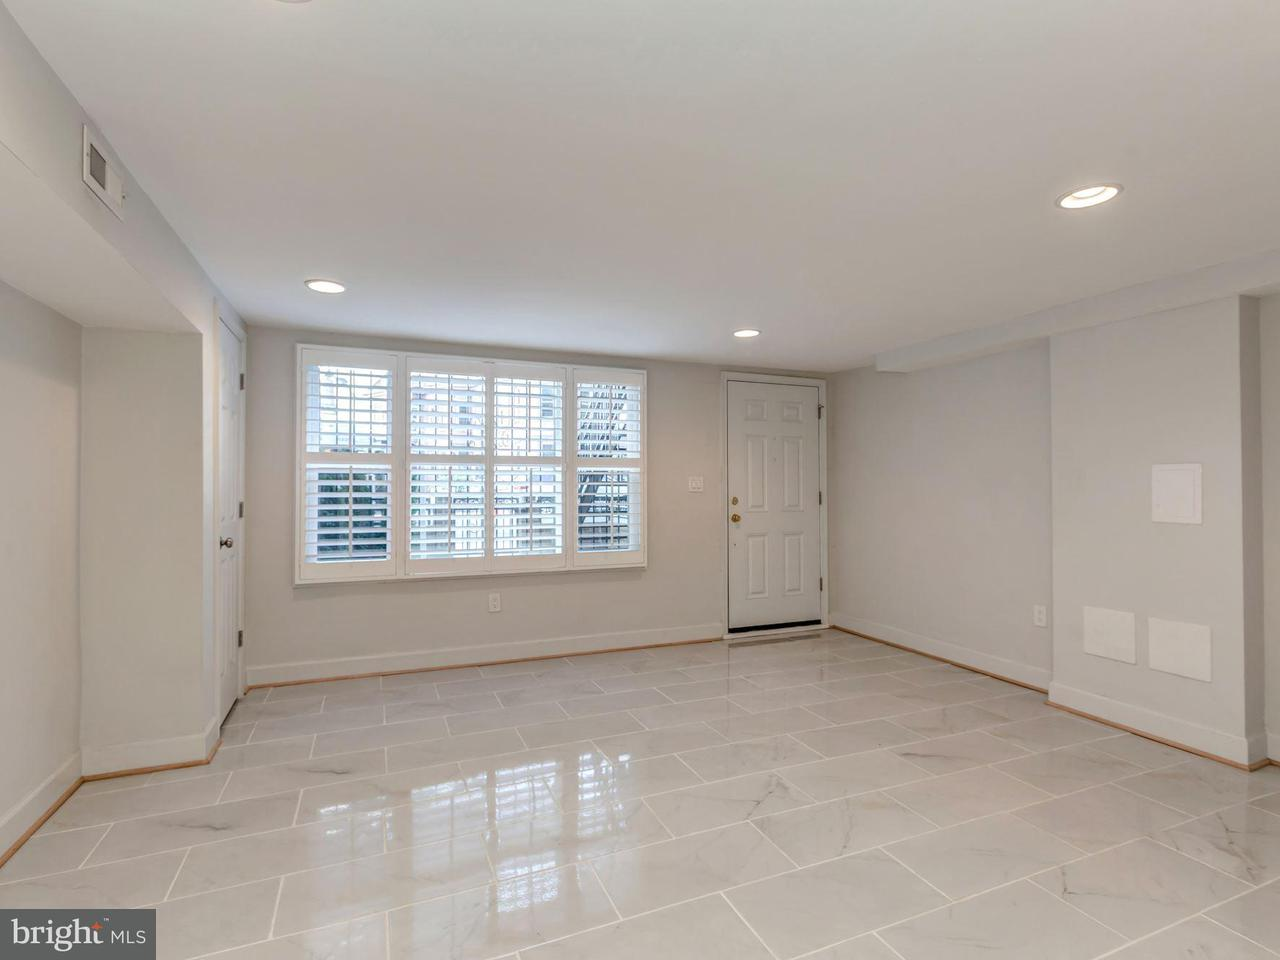 Condominium for Rent at 231 Florida Ave NW #1 Washington, District Of Columbia 20001 United States